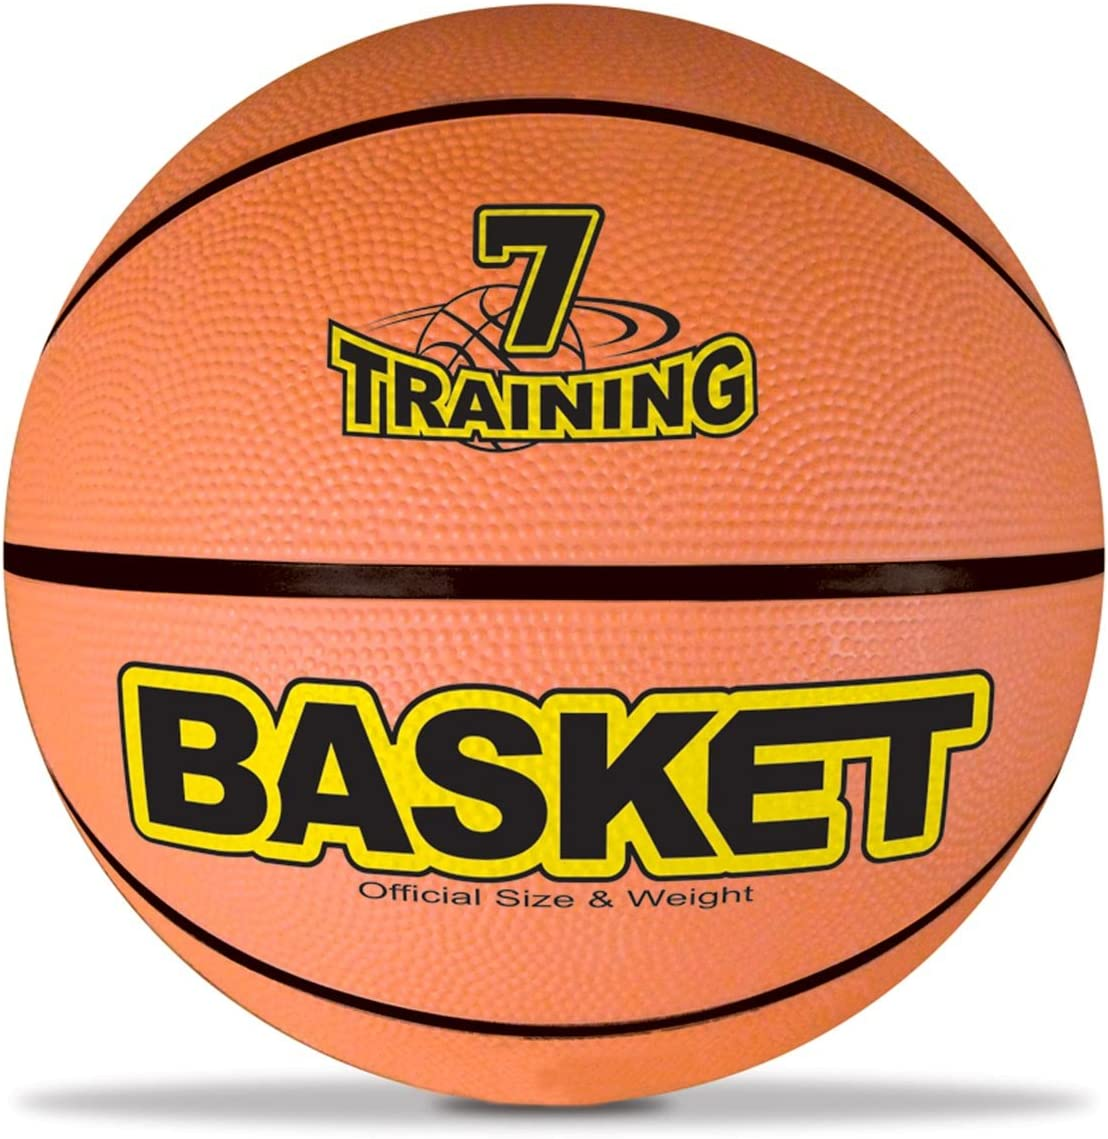 Mondo - Basket Training, balón, 600 Gramos (13041.0): Amazon.es ...